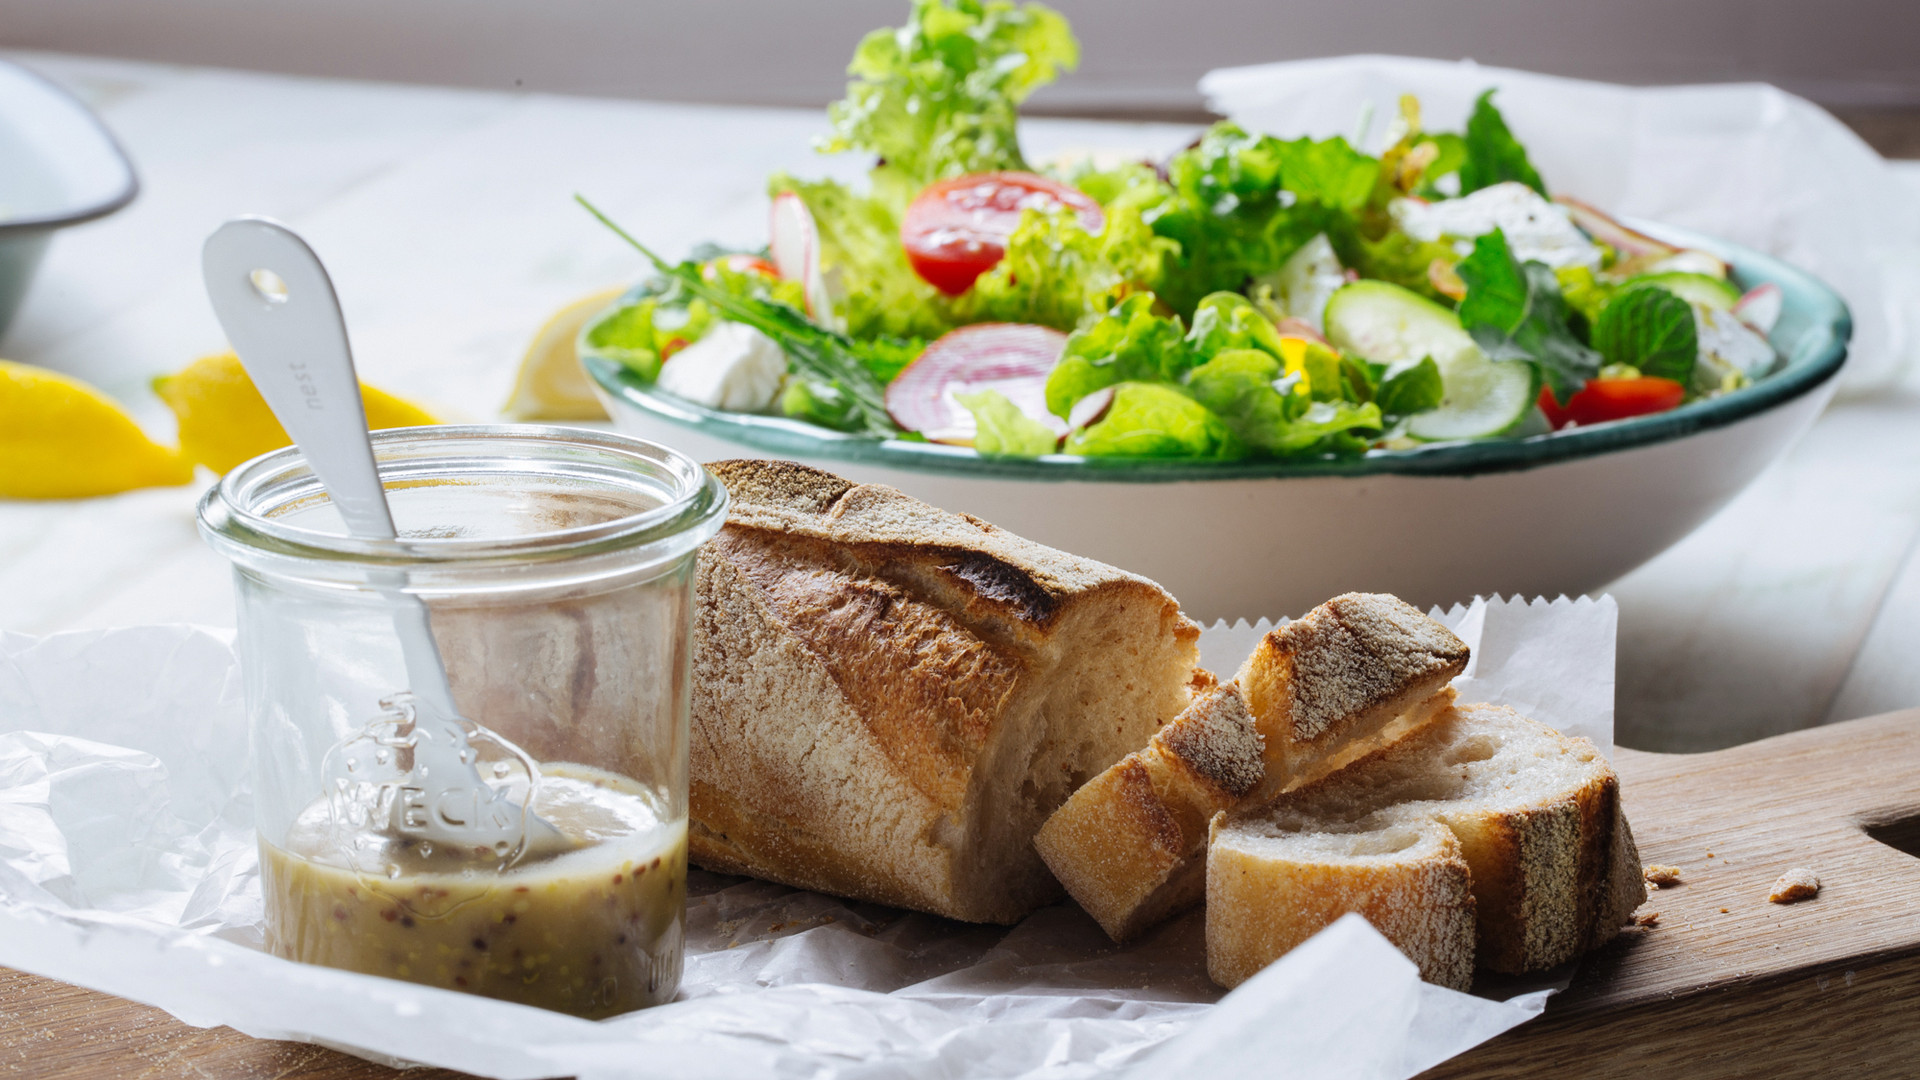 Salad and Bread